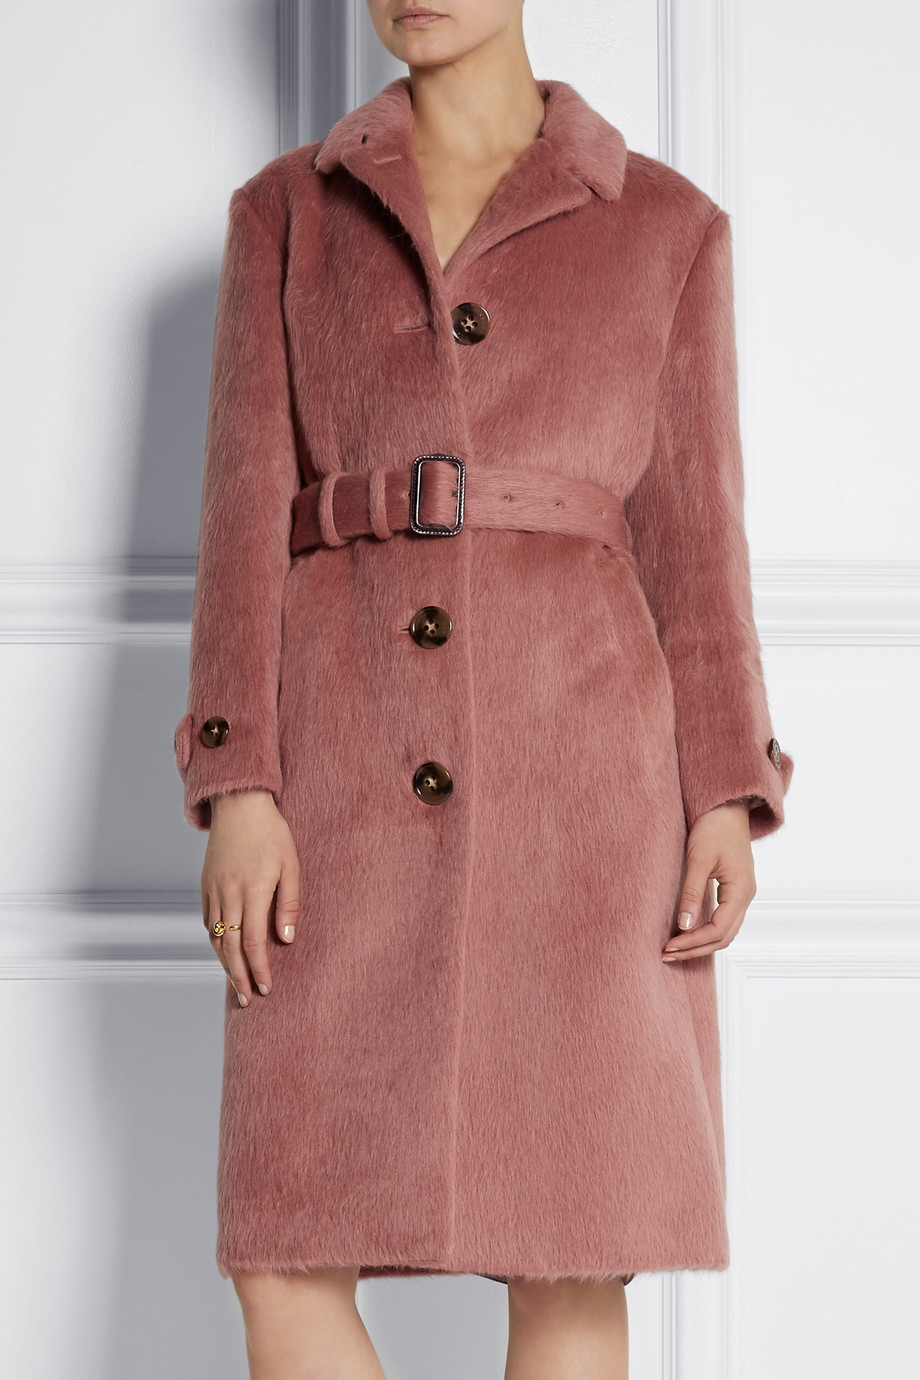 Burberry prorsum Brushed-Wool Coat in Pink | Lyst